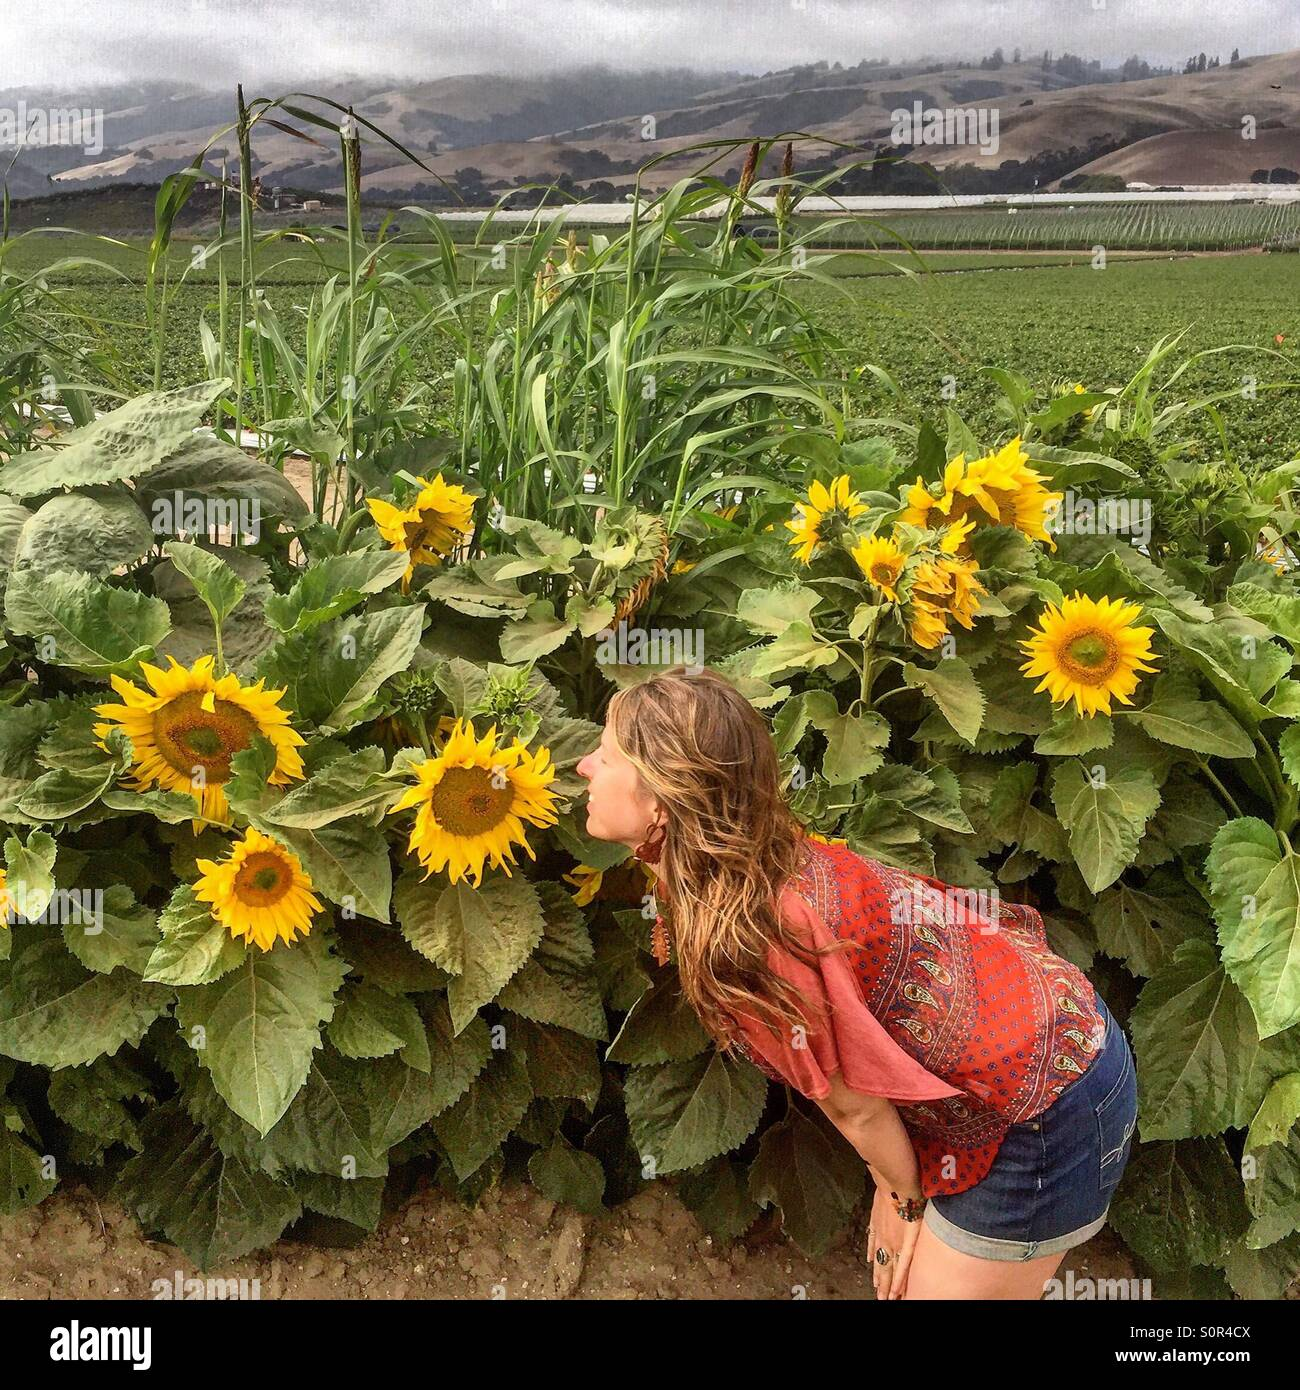 Sometimes you just have to stop and smell the flowers! Stock Photo